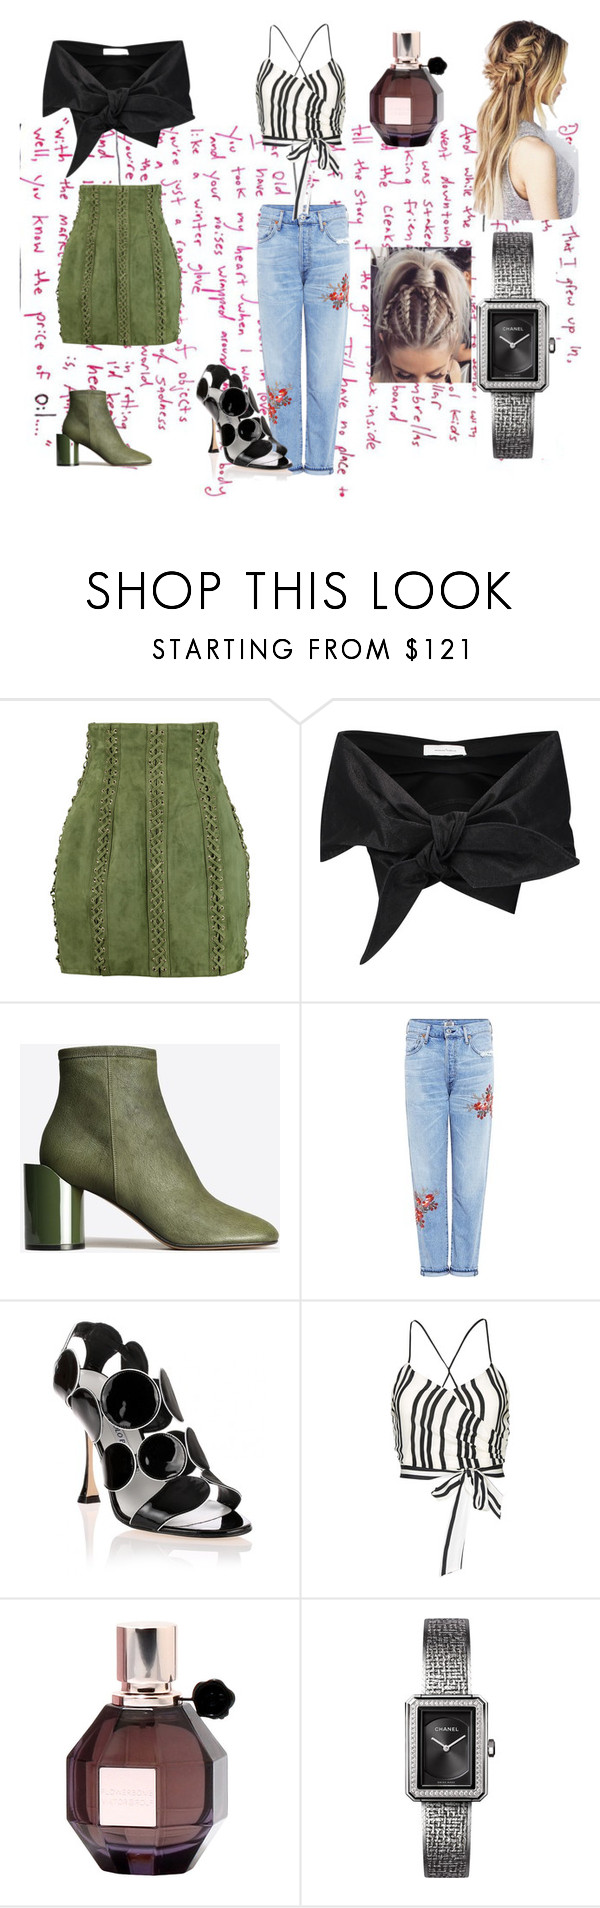 """""""Untitled #40"""" by annmariec2 ❤ liked on Polyvore featuring Balmain, Marques'Almeida, Maison Margiela, Citizens of Humanity, Manolo Blahnik, Alice + Olivia, Viktor & Rolf and Chanel"""